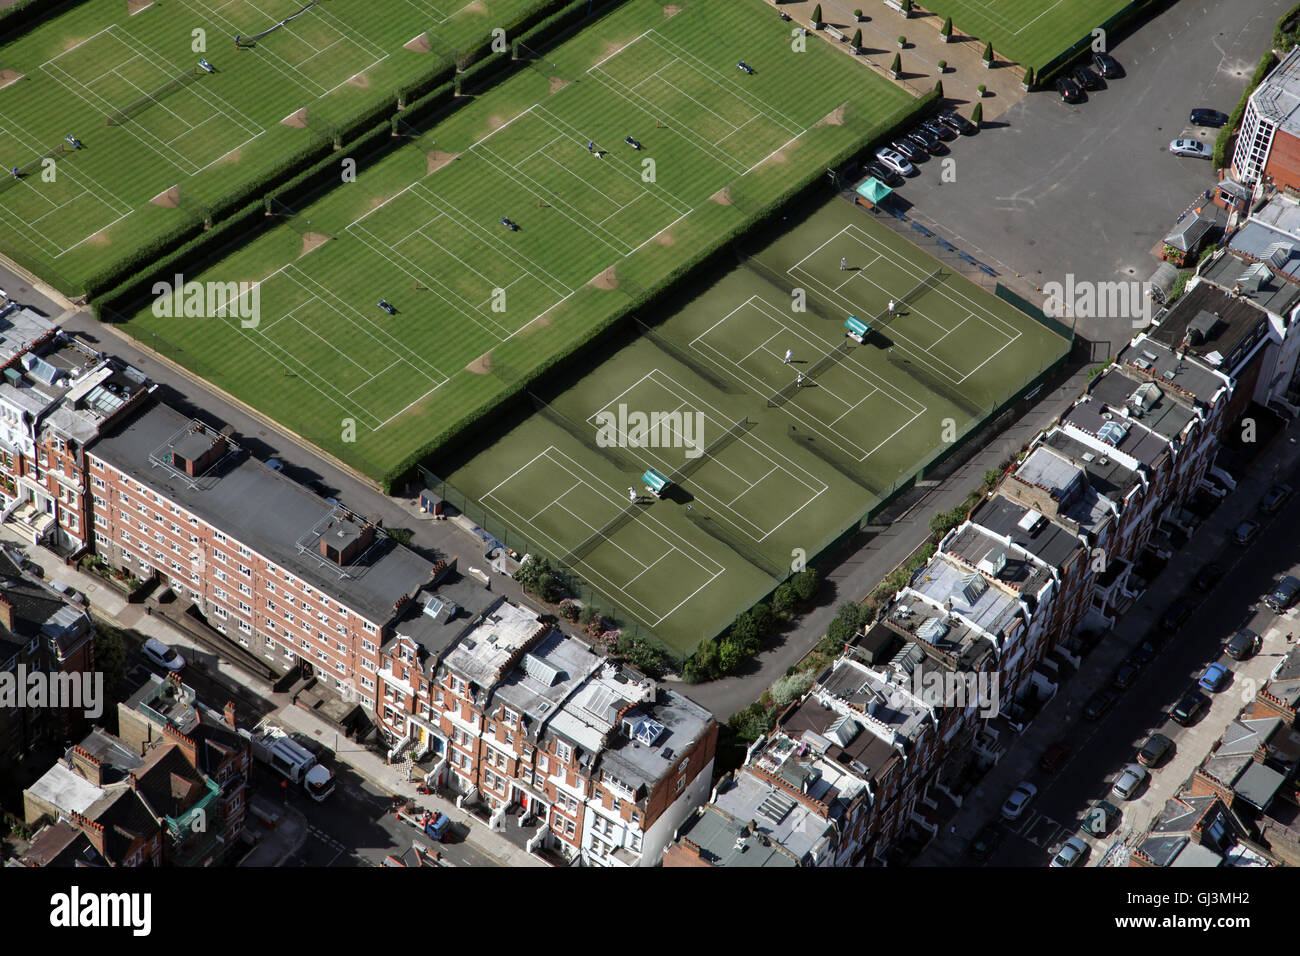 Queens Club Tennis >> aerial view of The Queens Club tennis courts in West ...